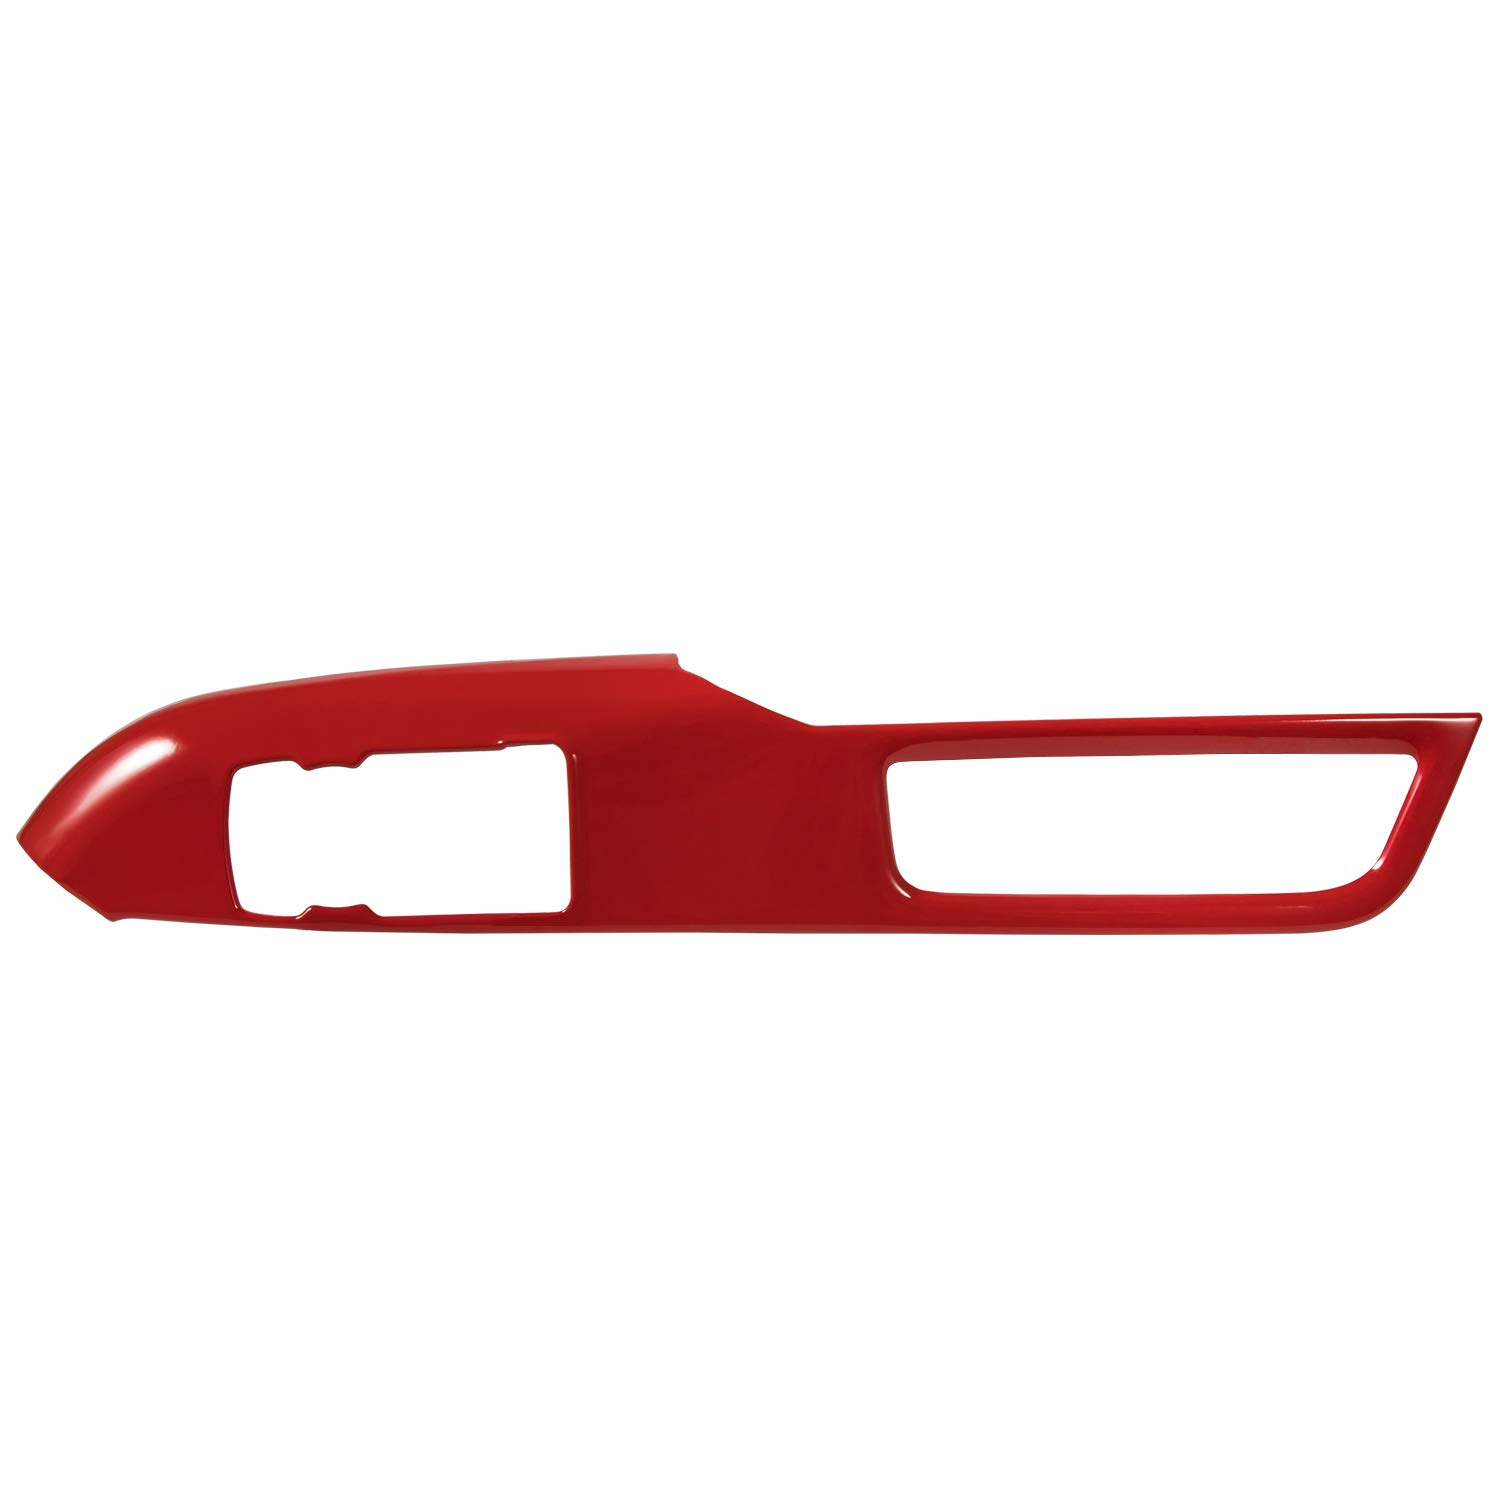 Camoo Red Interior Door Handle Window Lift Switch Button Panel Decoration Frame Steel For Ford Mustang 2015-2019